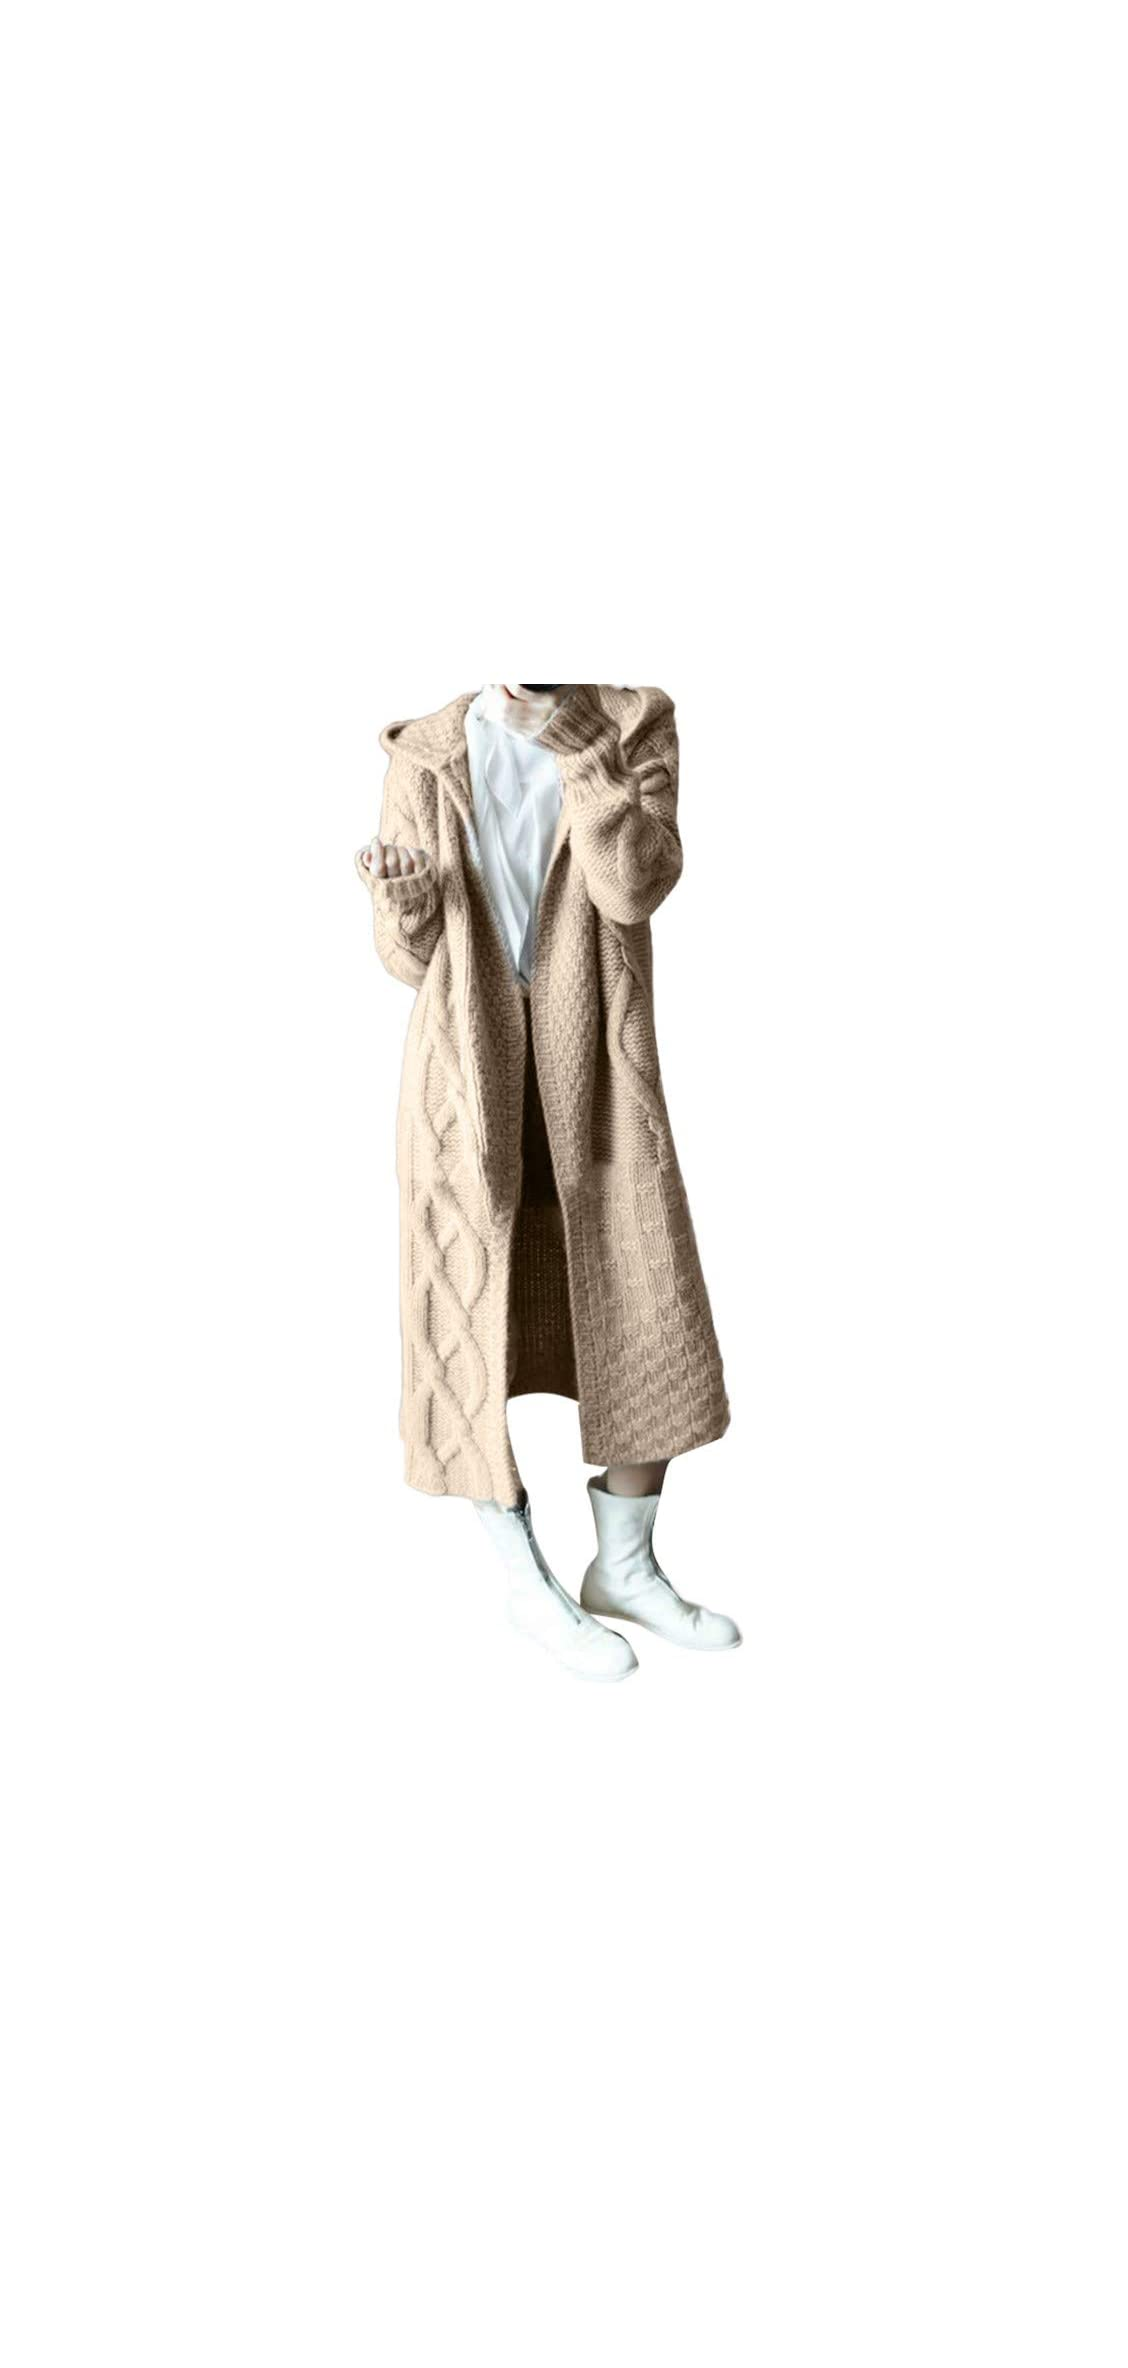 Autumn Winter Women's Hooded Thick Knit Cardigan Long